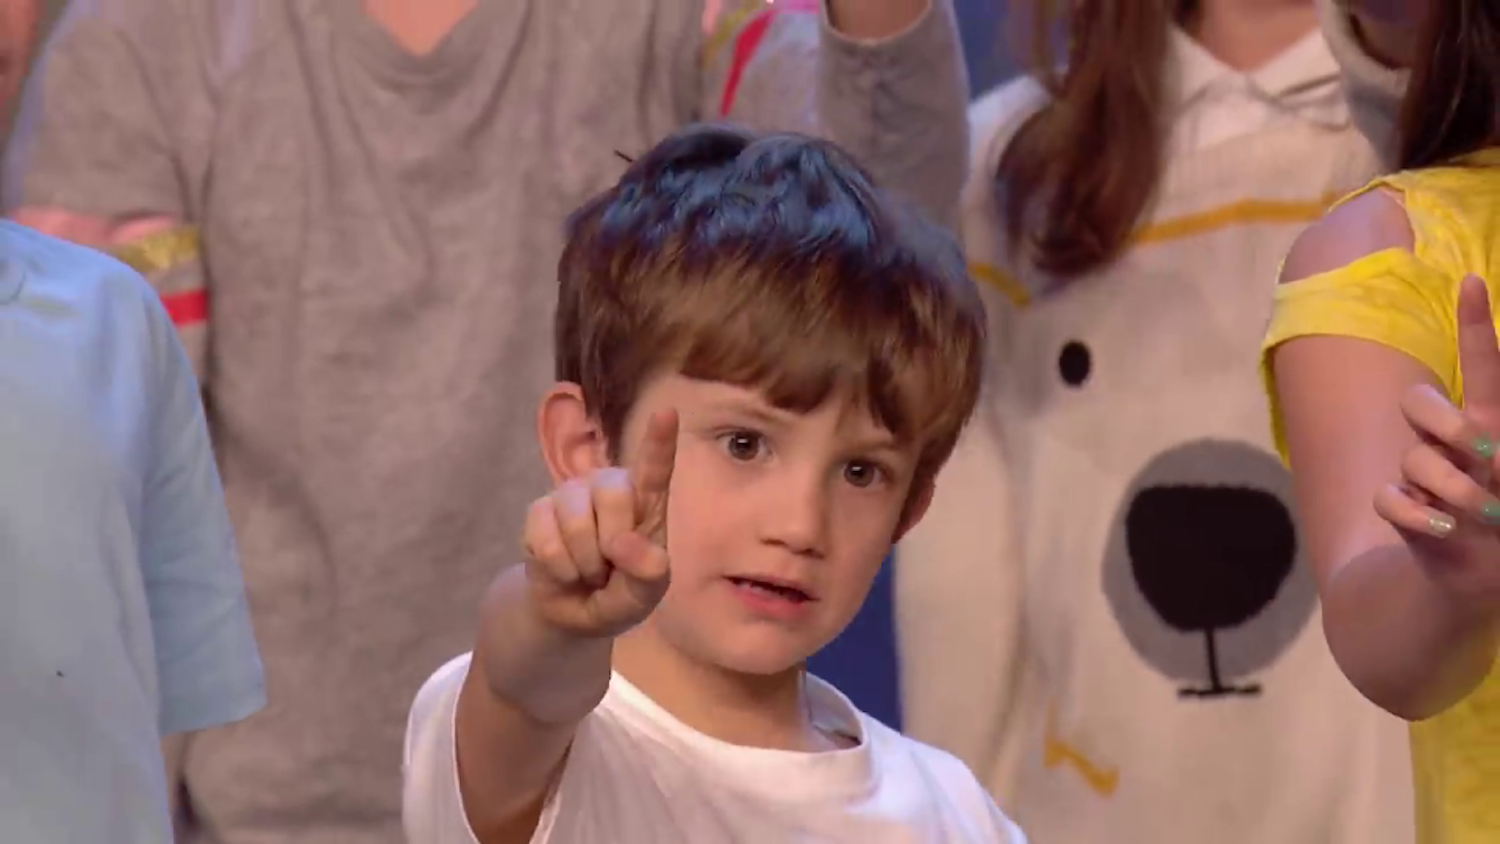 SOS From The Kids (Credit: ITV)